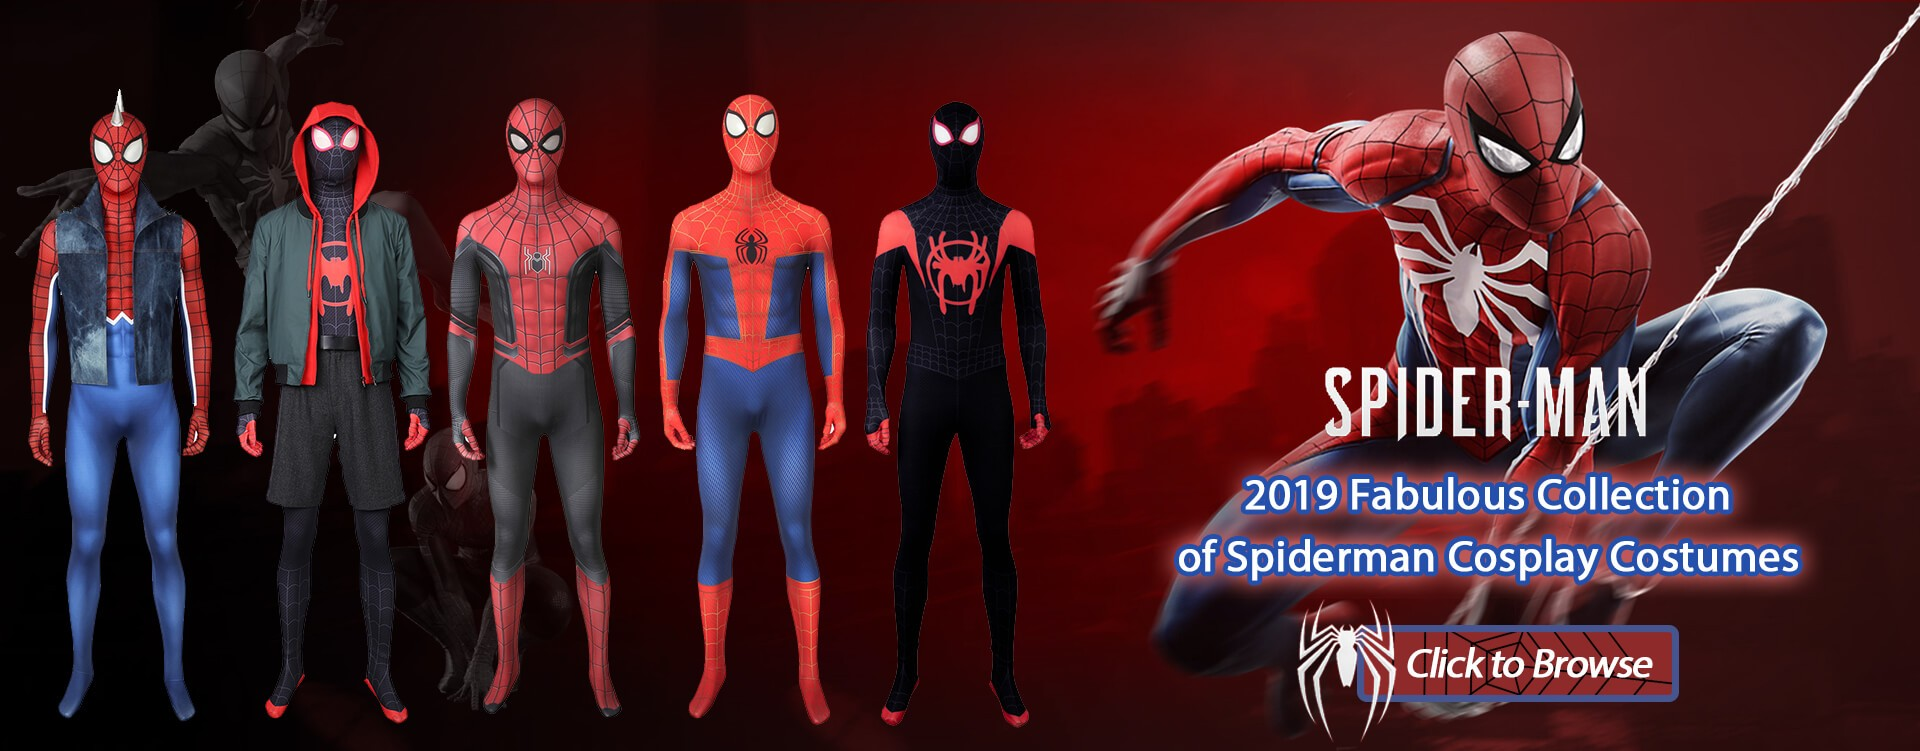 2019 Fabulous Collection of Spiderman Cosplay Costumes